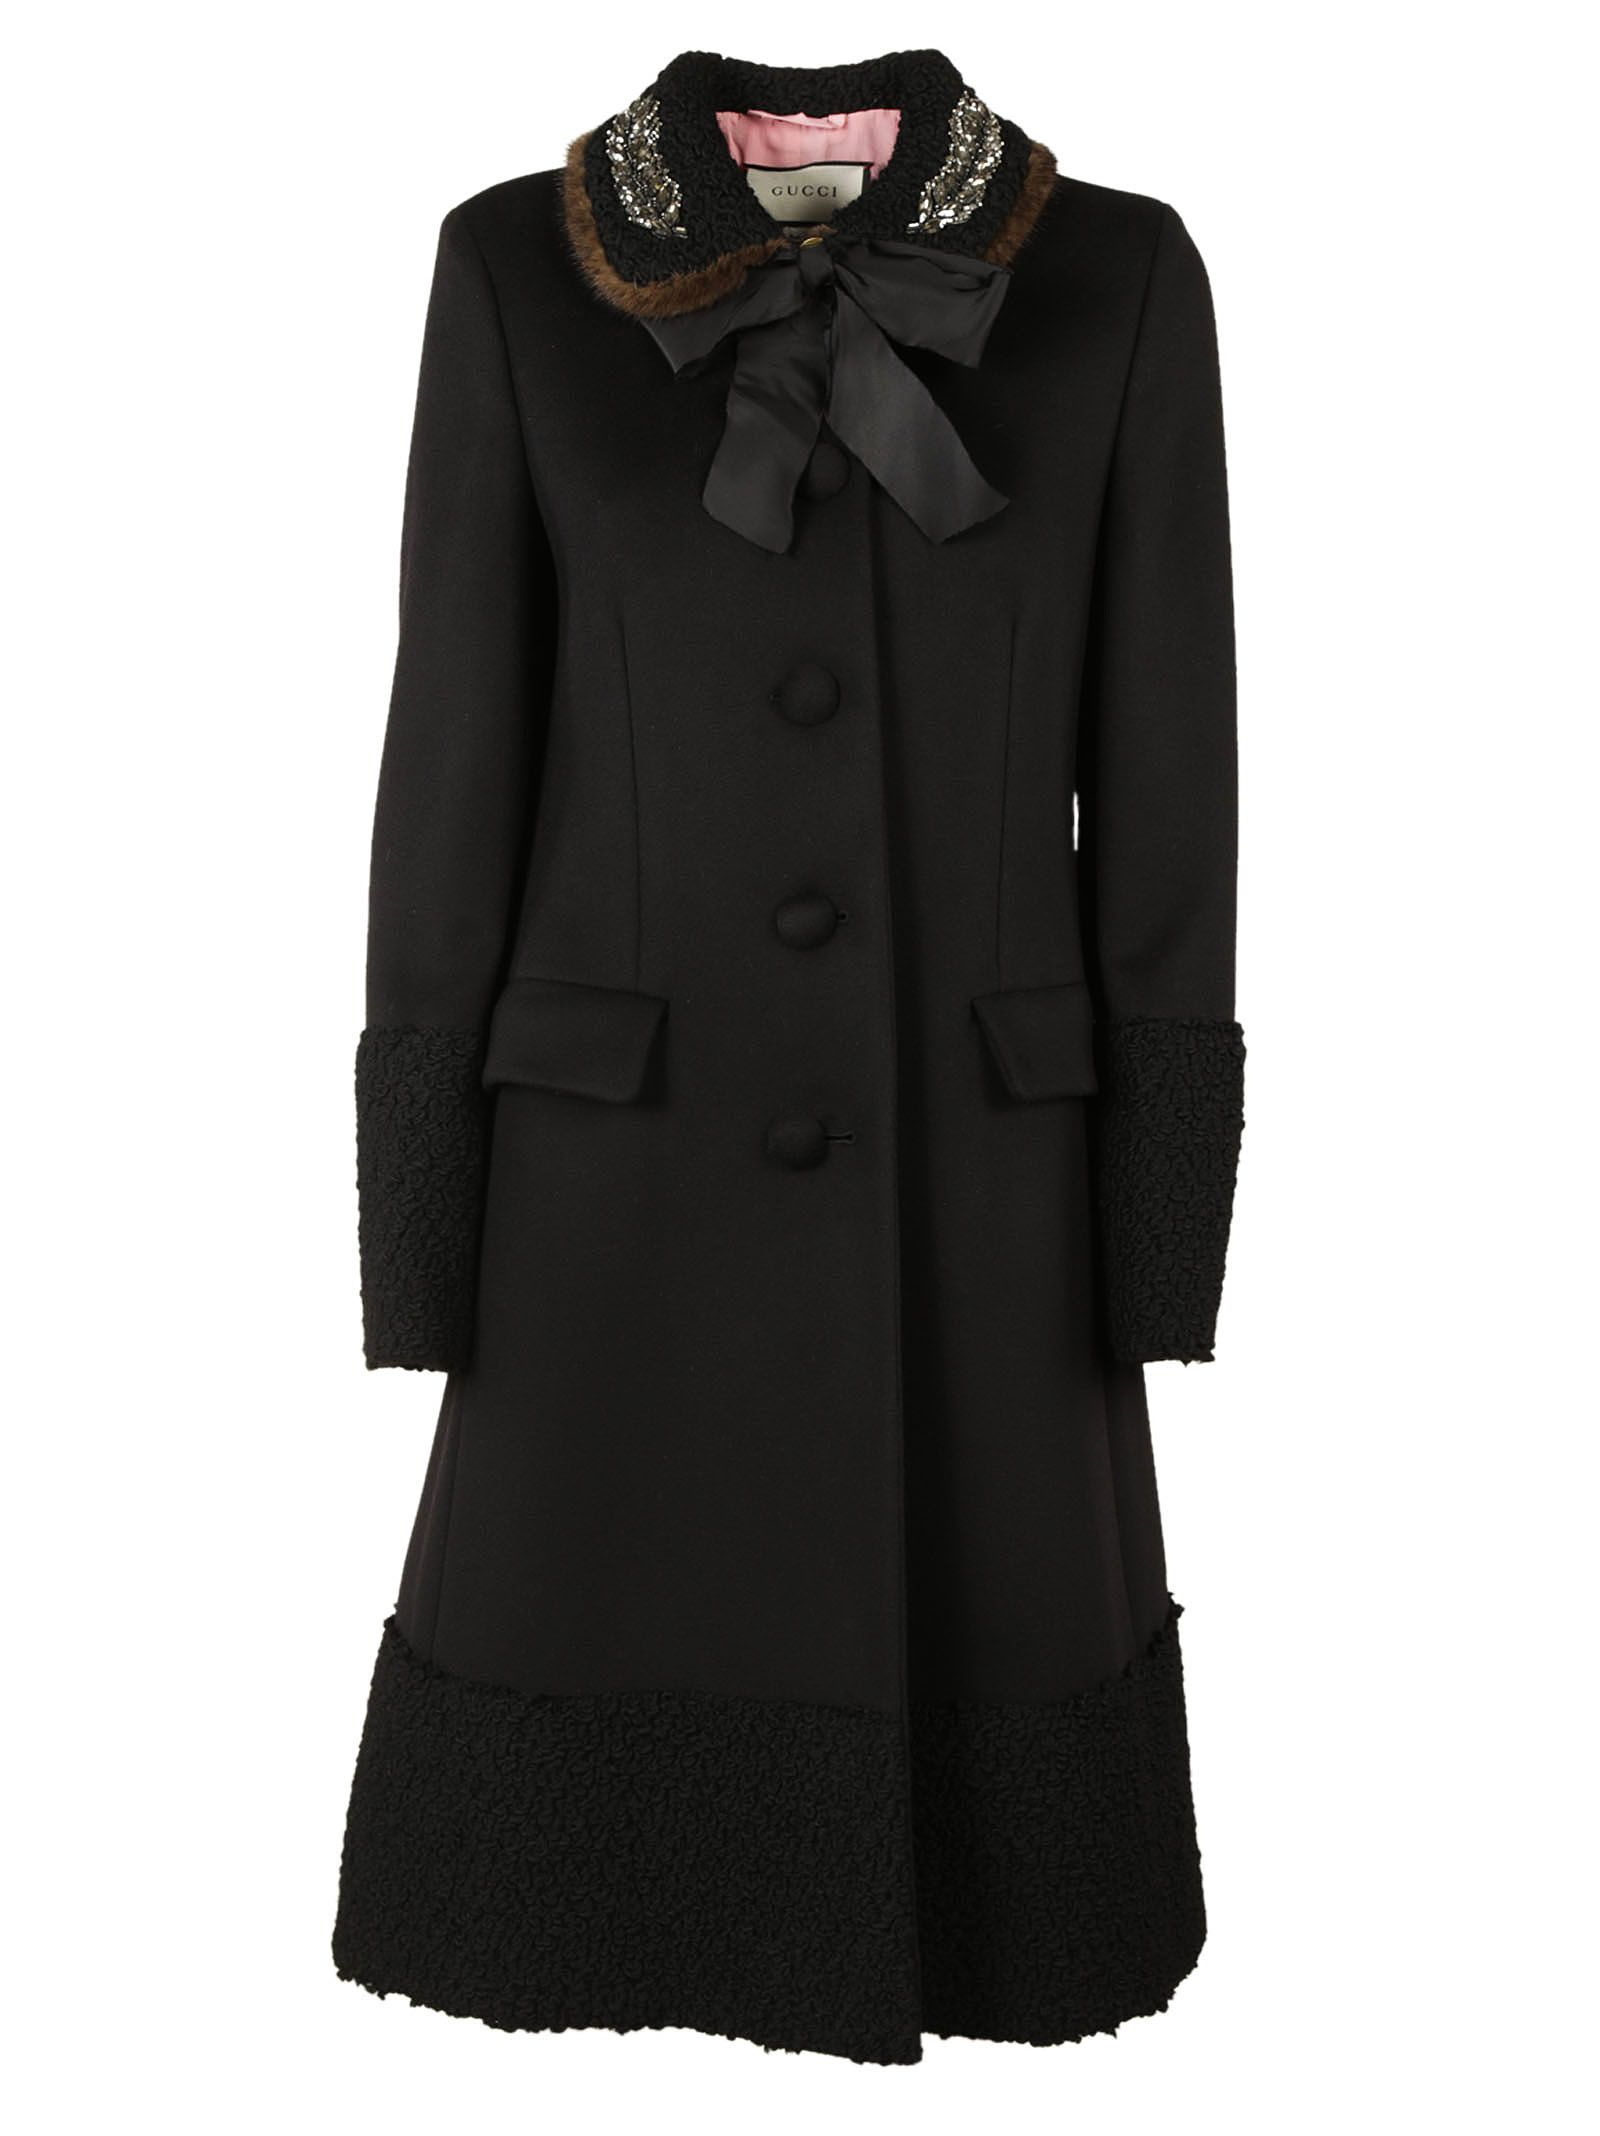 Gucci Embellished Collar Coat